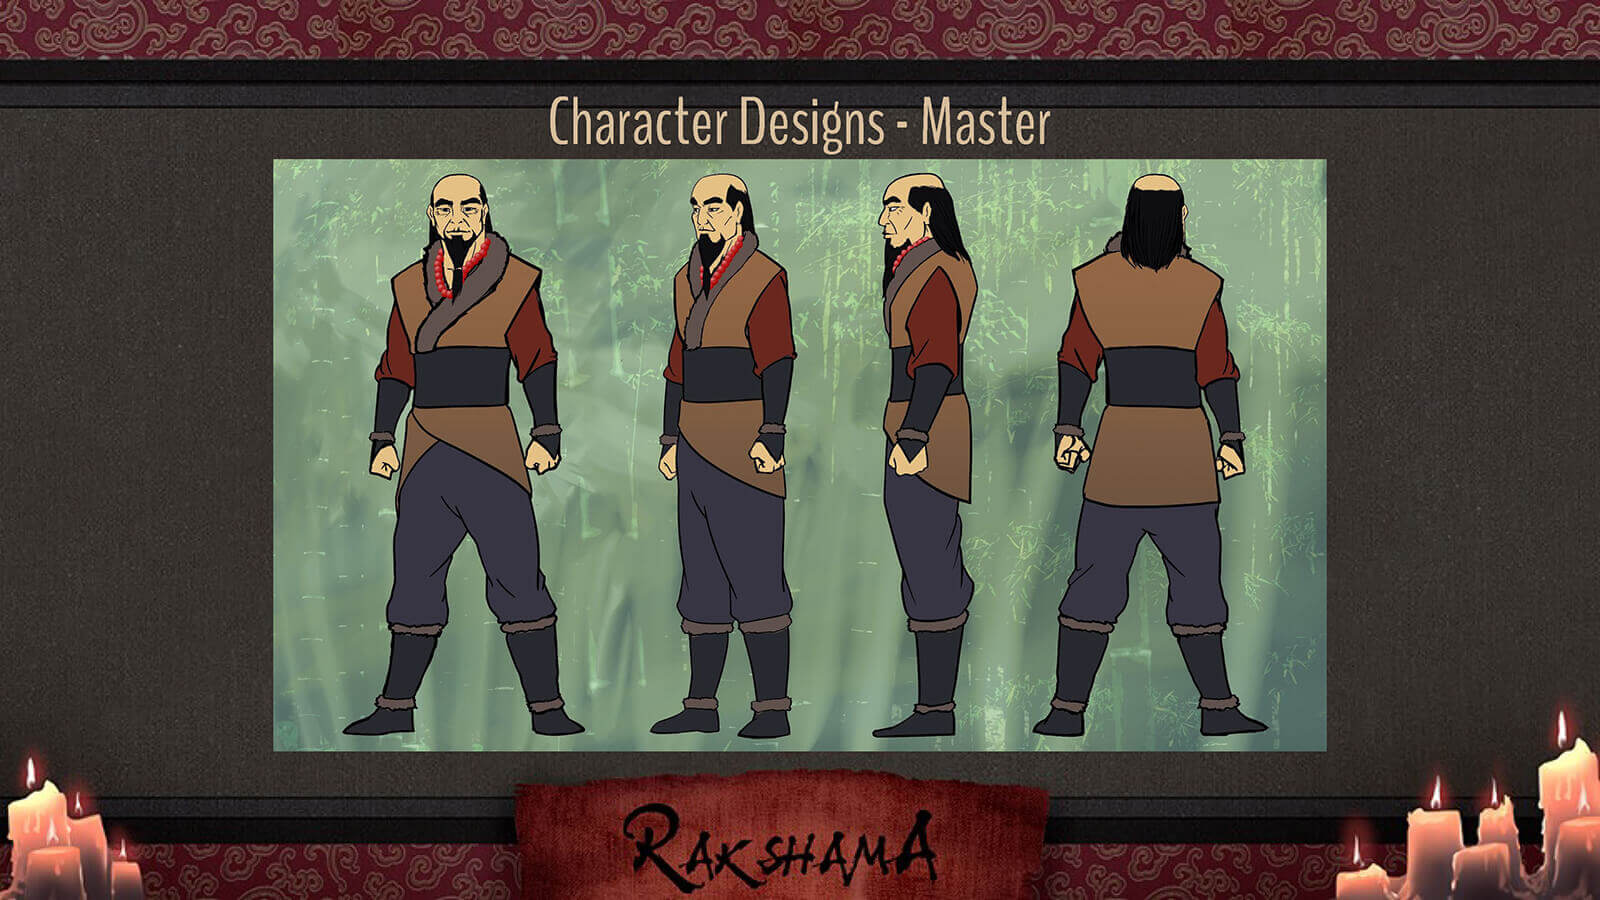 Character Design slide for the film Rakshama, depicting the Master character, a warrior in a brown, blue, and red clothing